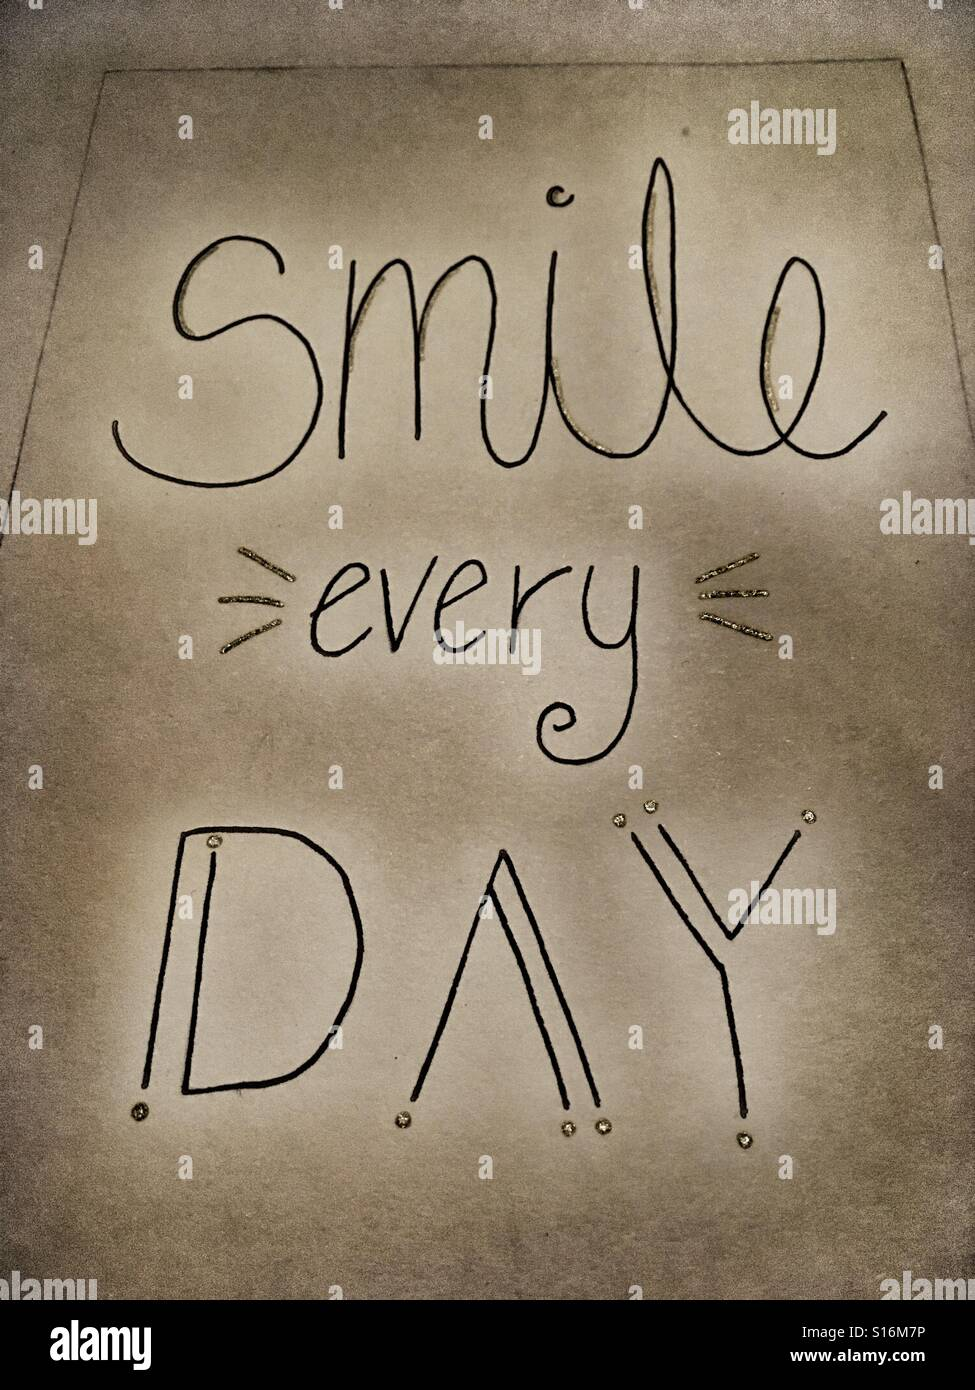 Handwritten 'smile every day' caption in multiple fonts - Stock Image